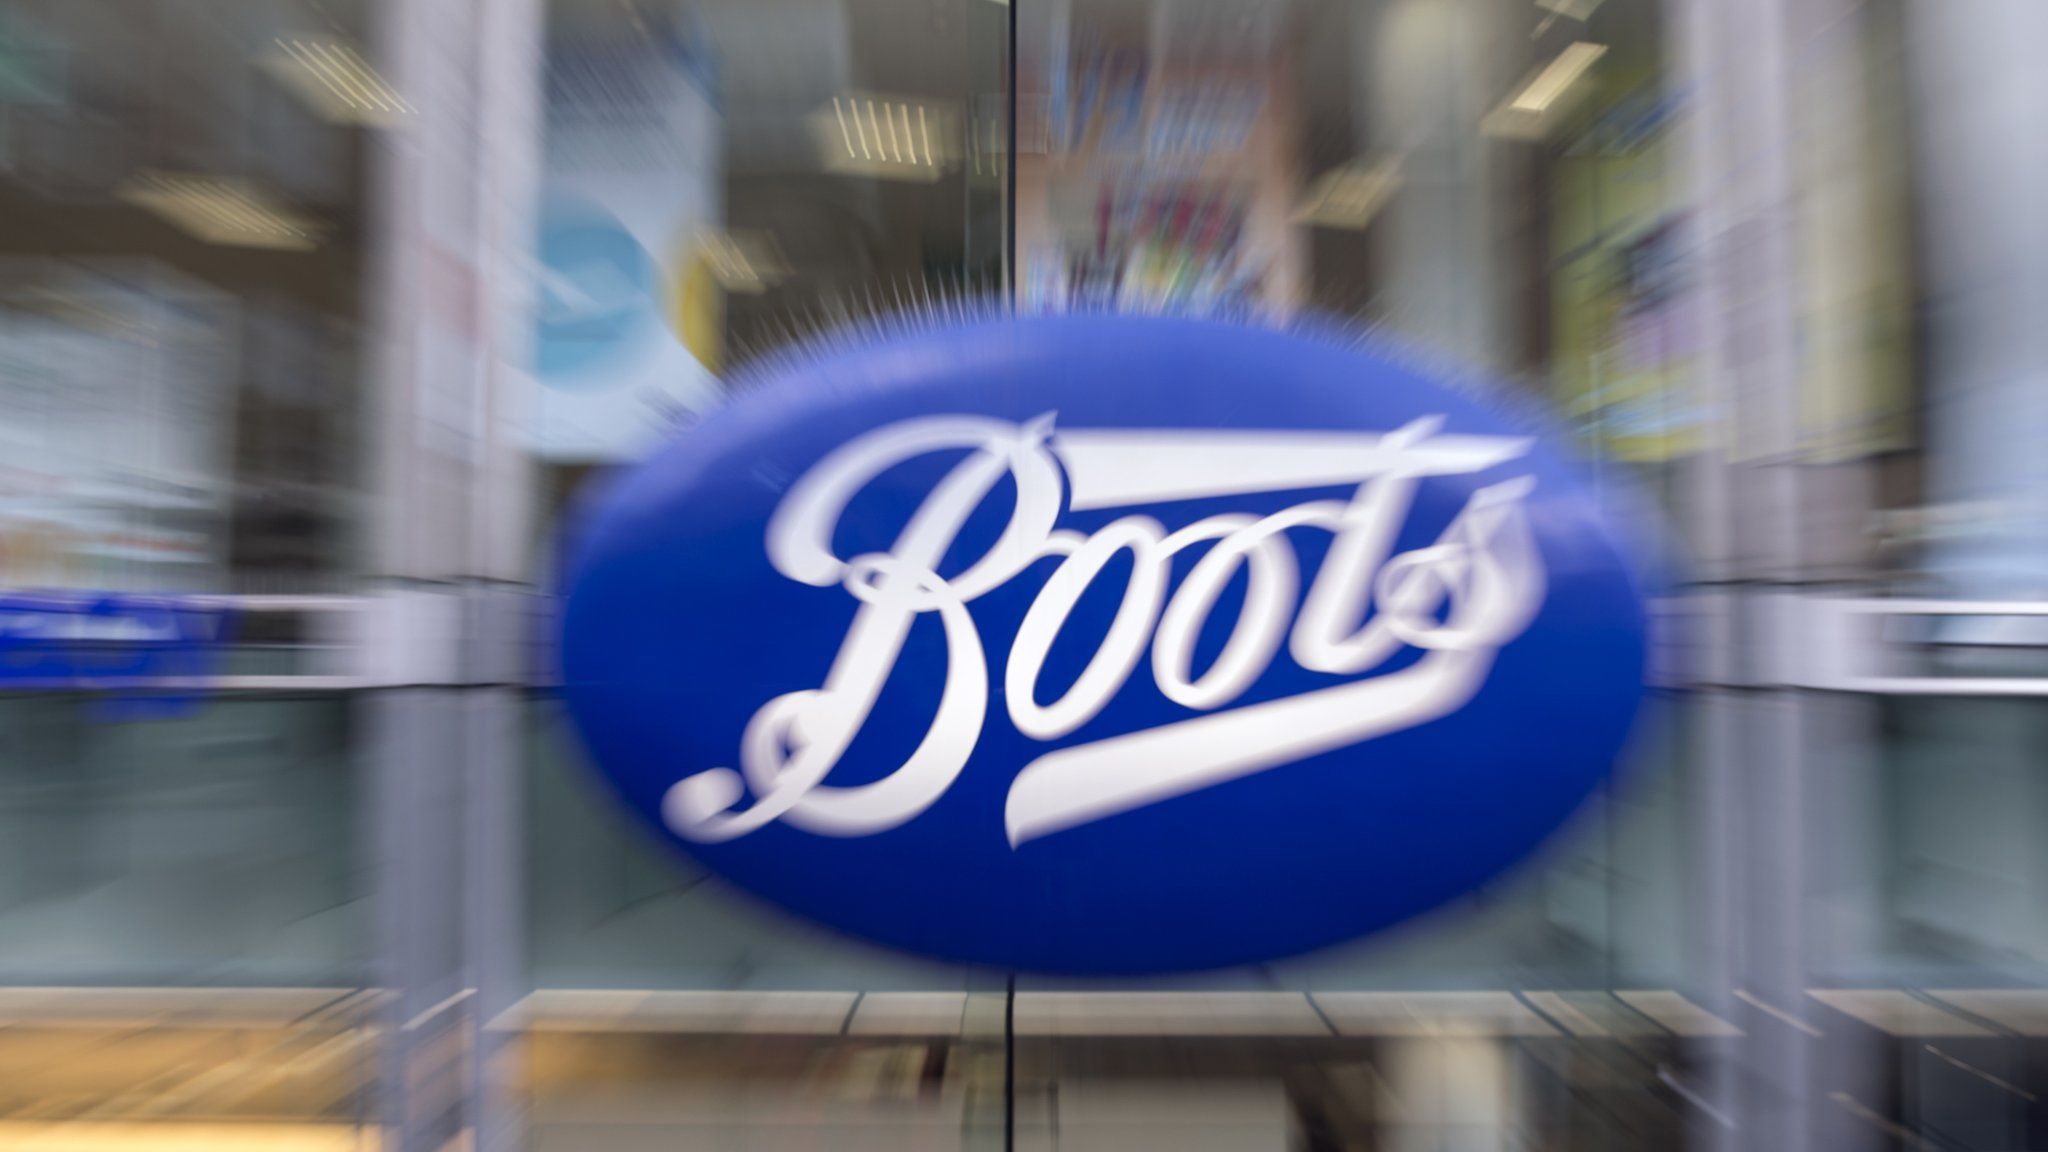 Boots travel insurer faces double investigation